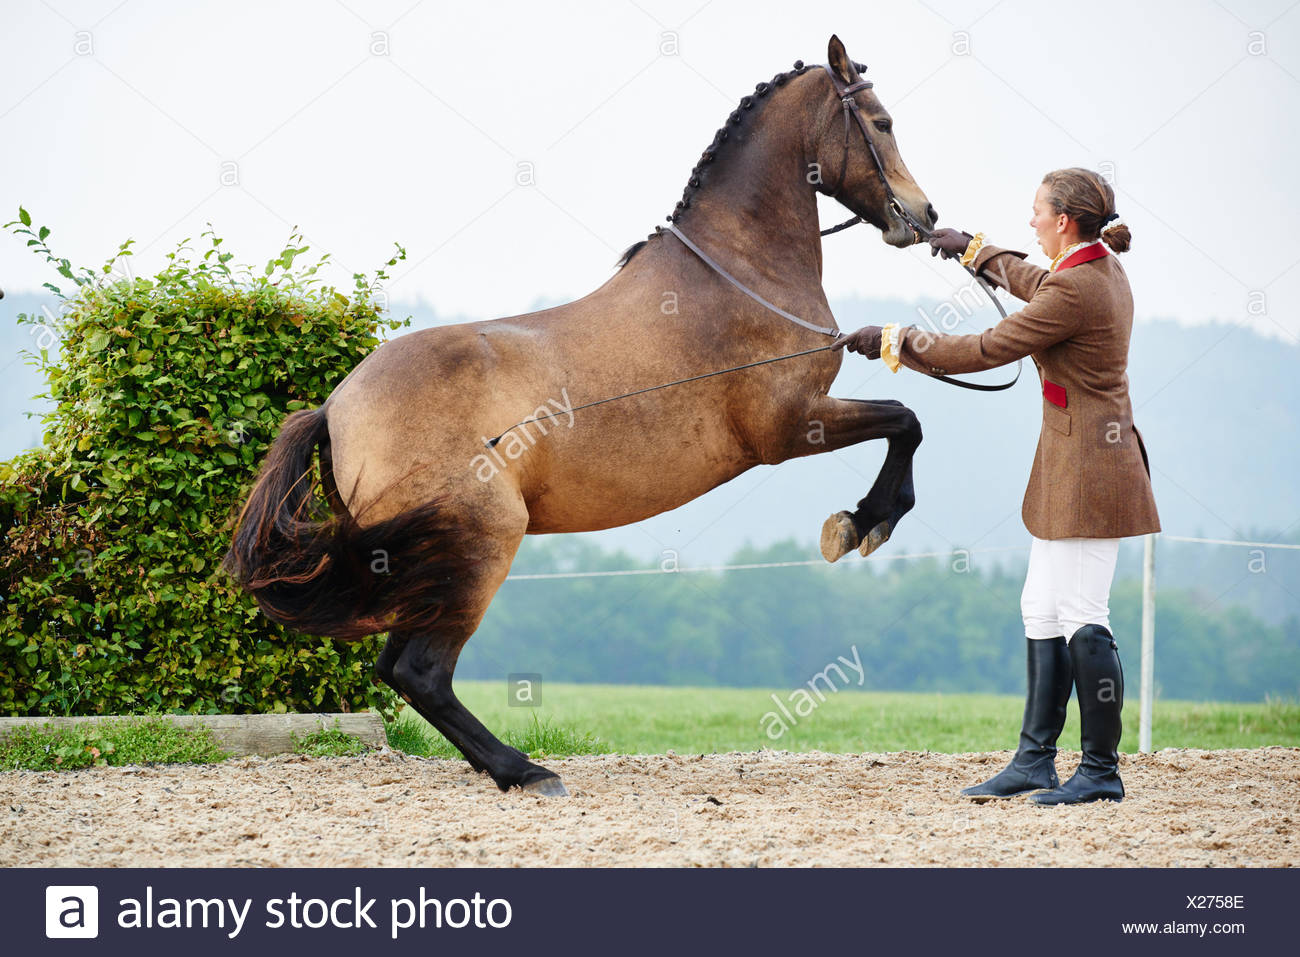 Female rider training dressage horse on hind legs in equestrian arena - Stock Image